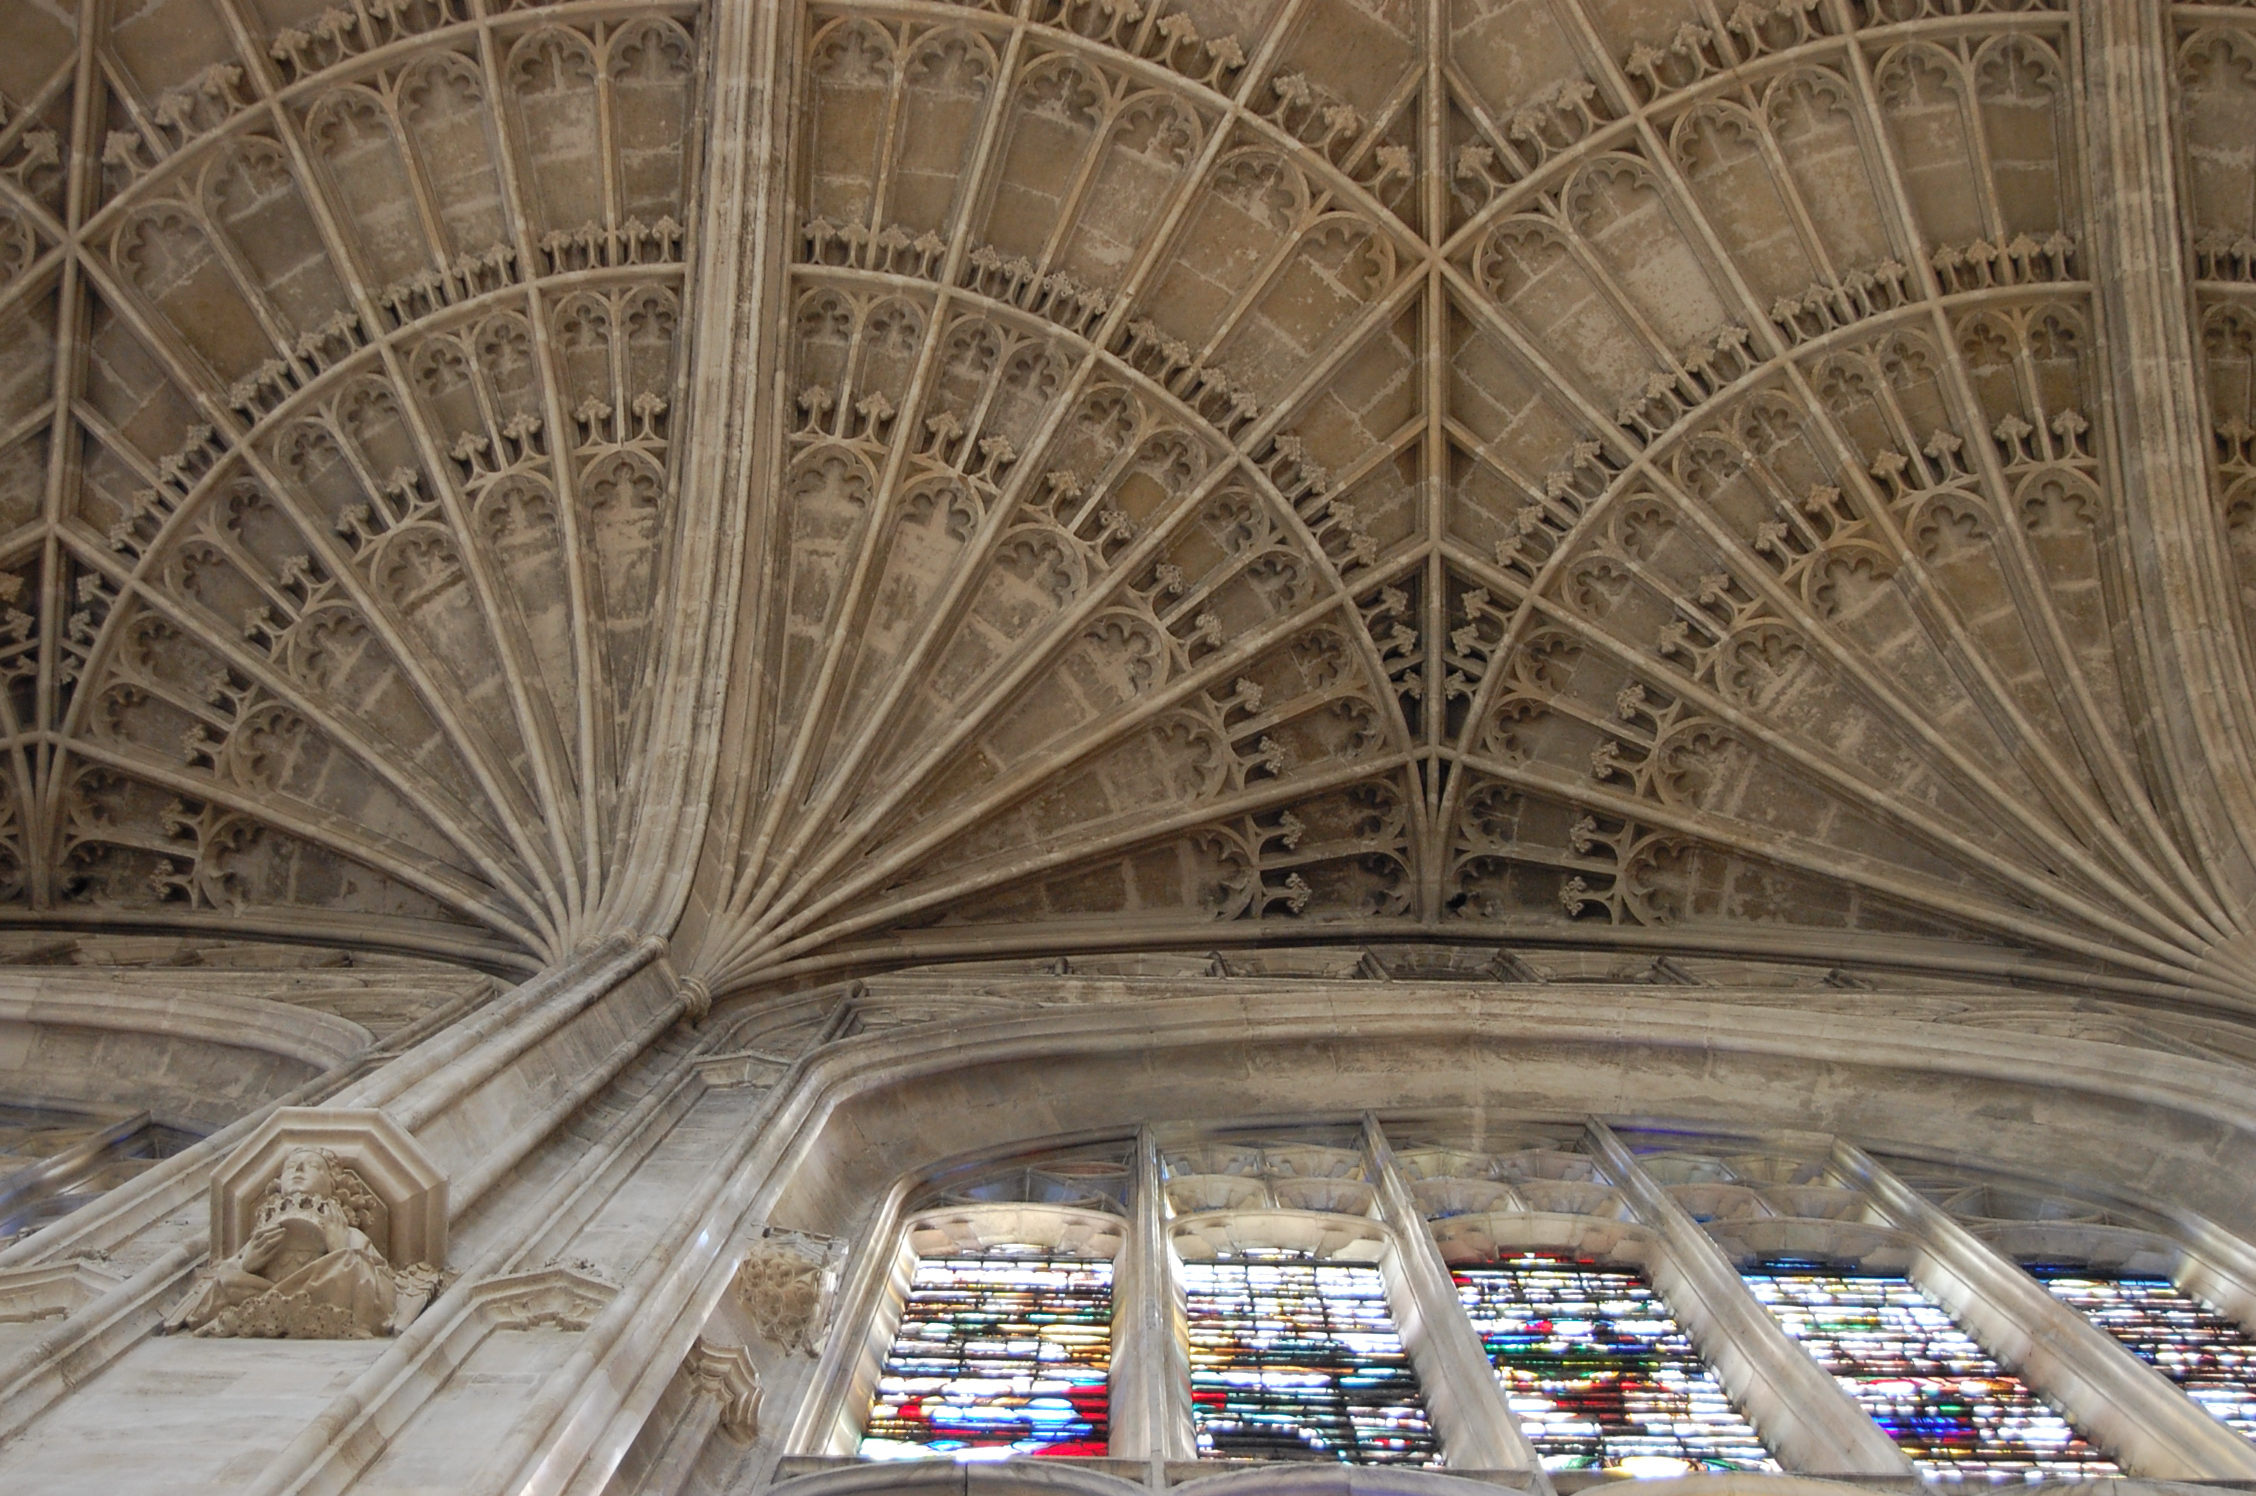 Rheotomic surfaces need help to generate streamlines for Cathedral ceiling definition